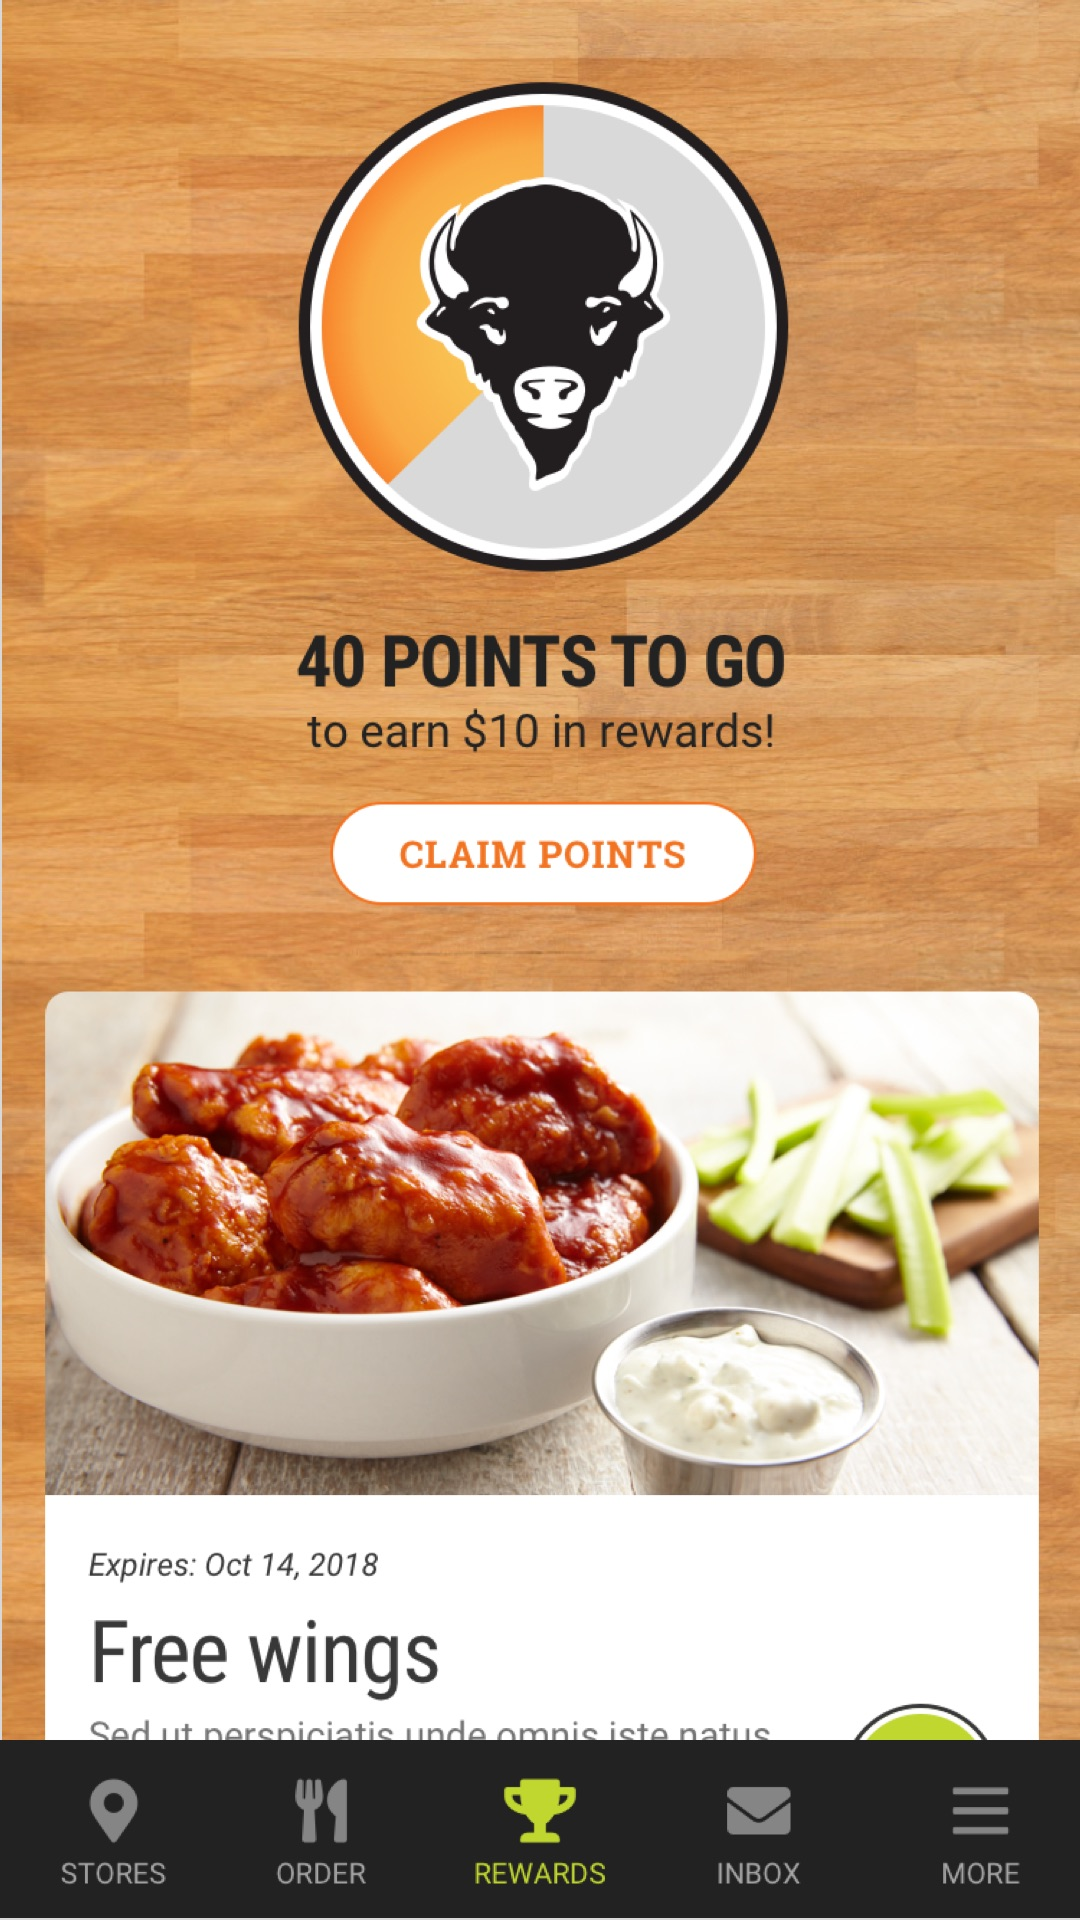 Buffalo Wings & Rings - Promos - Sauce campaign